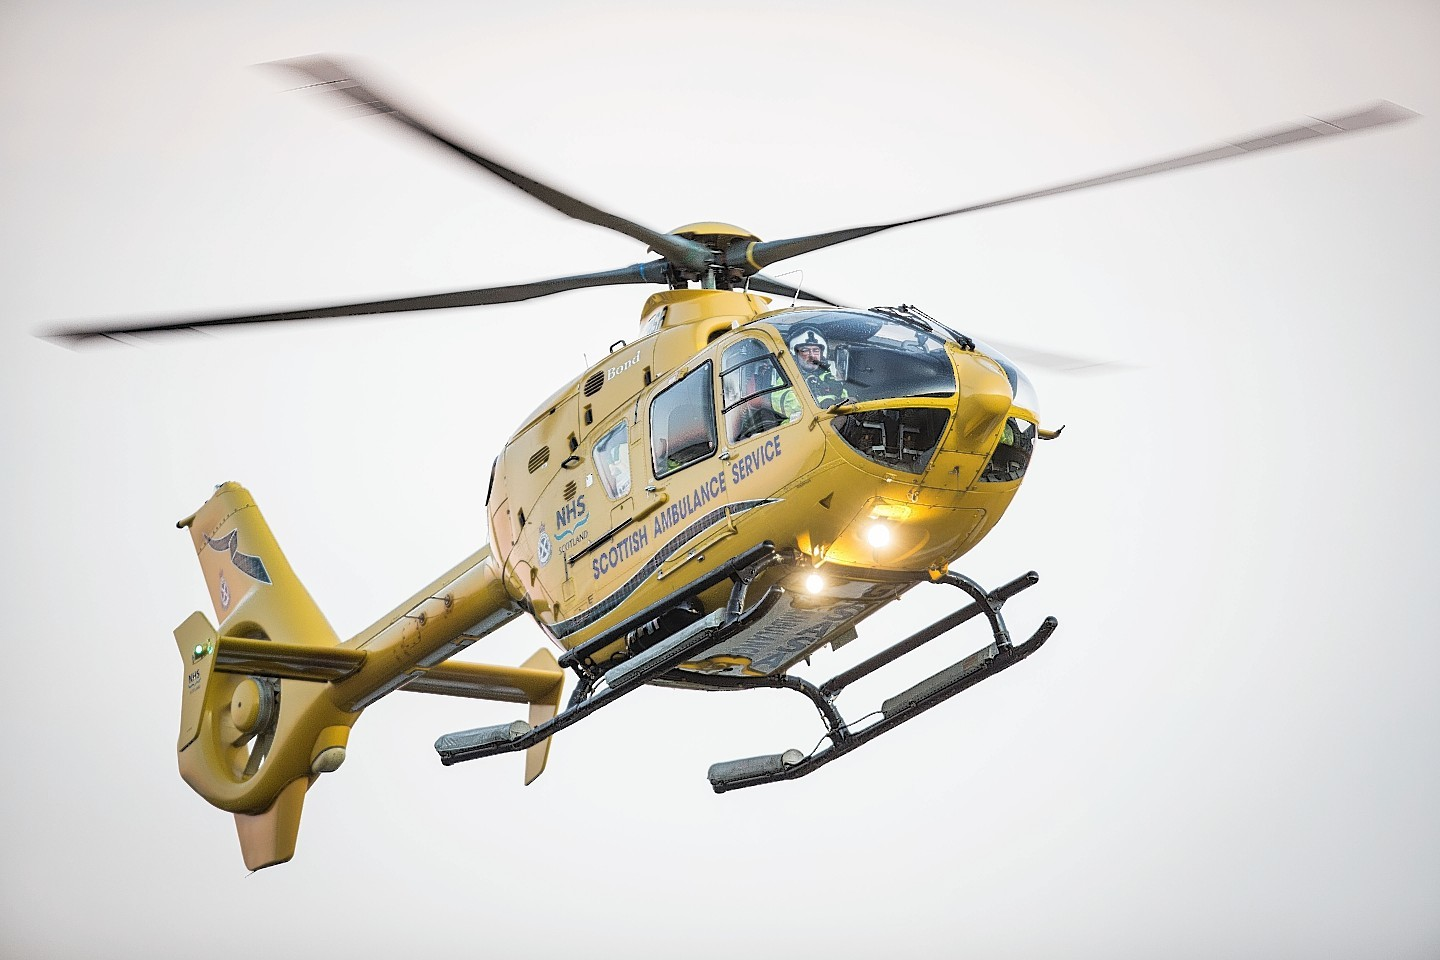 An air ambulance was called in to evacuate casualty to hospital